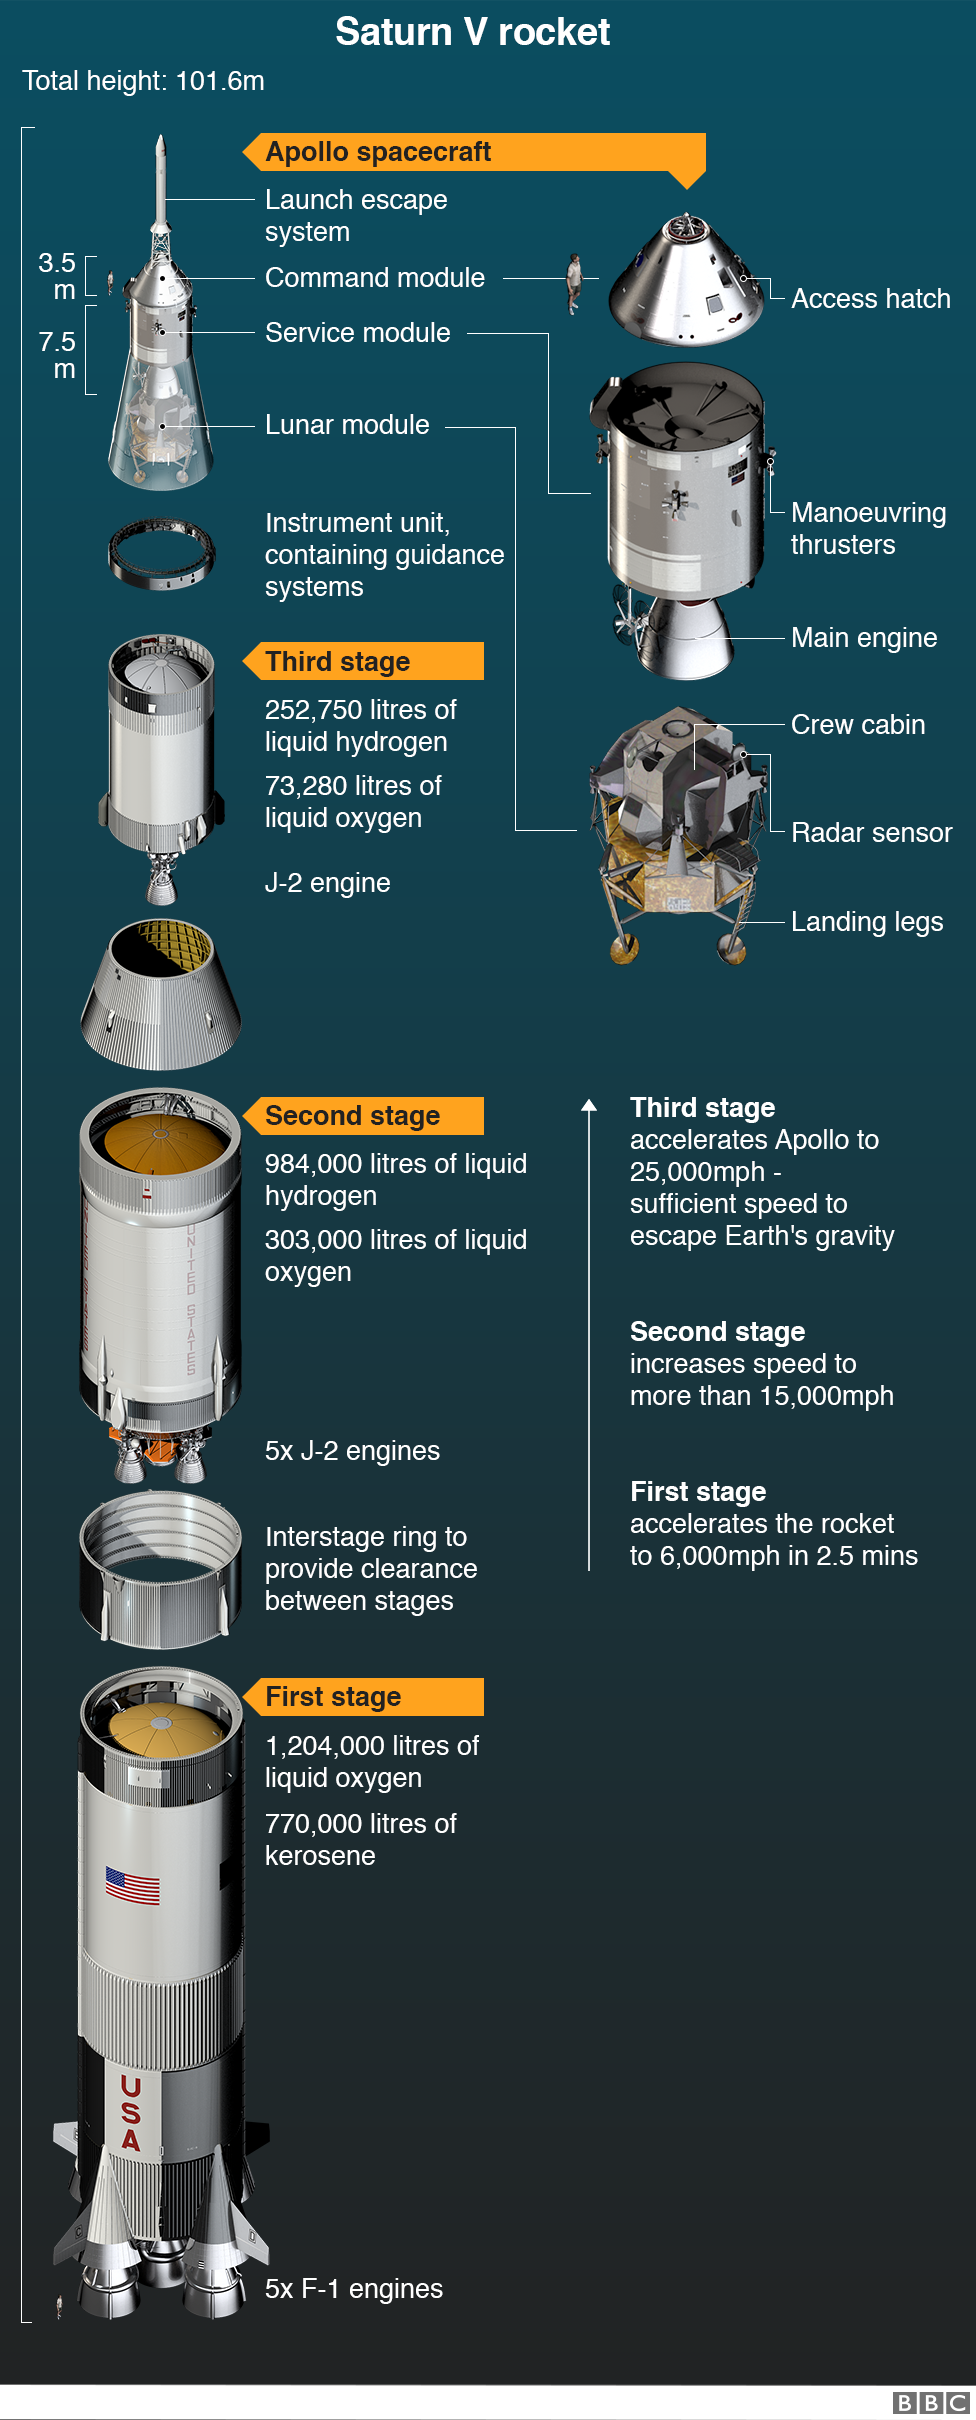 Saturn V rocket showing detail of stages and Apollo spacecraft